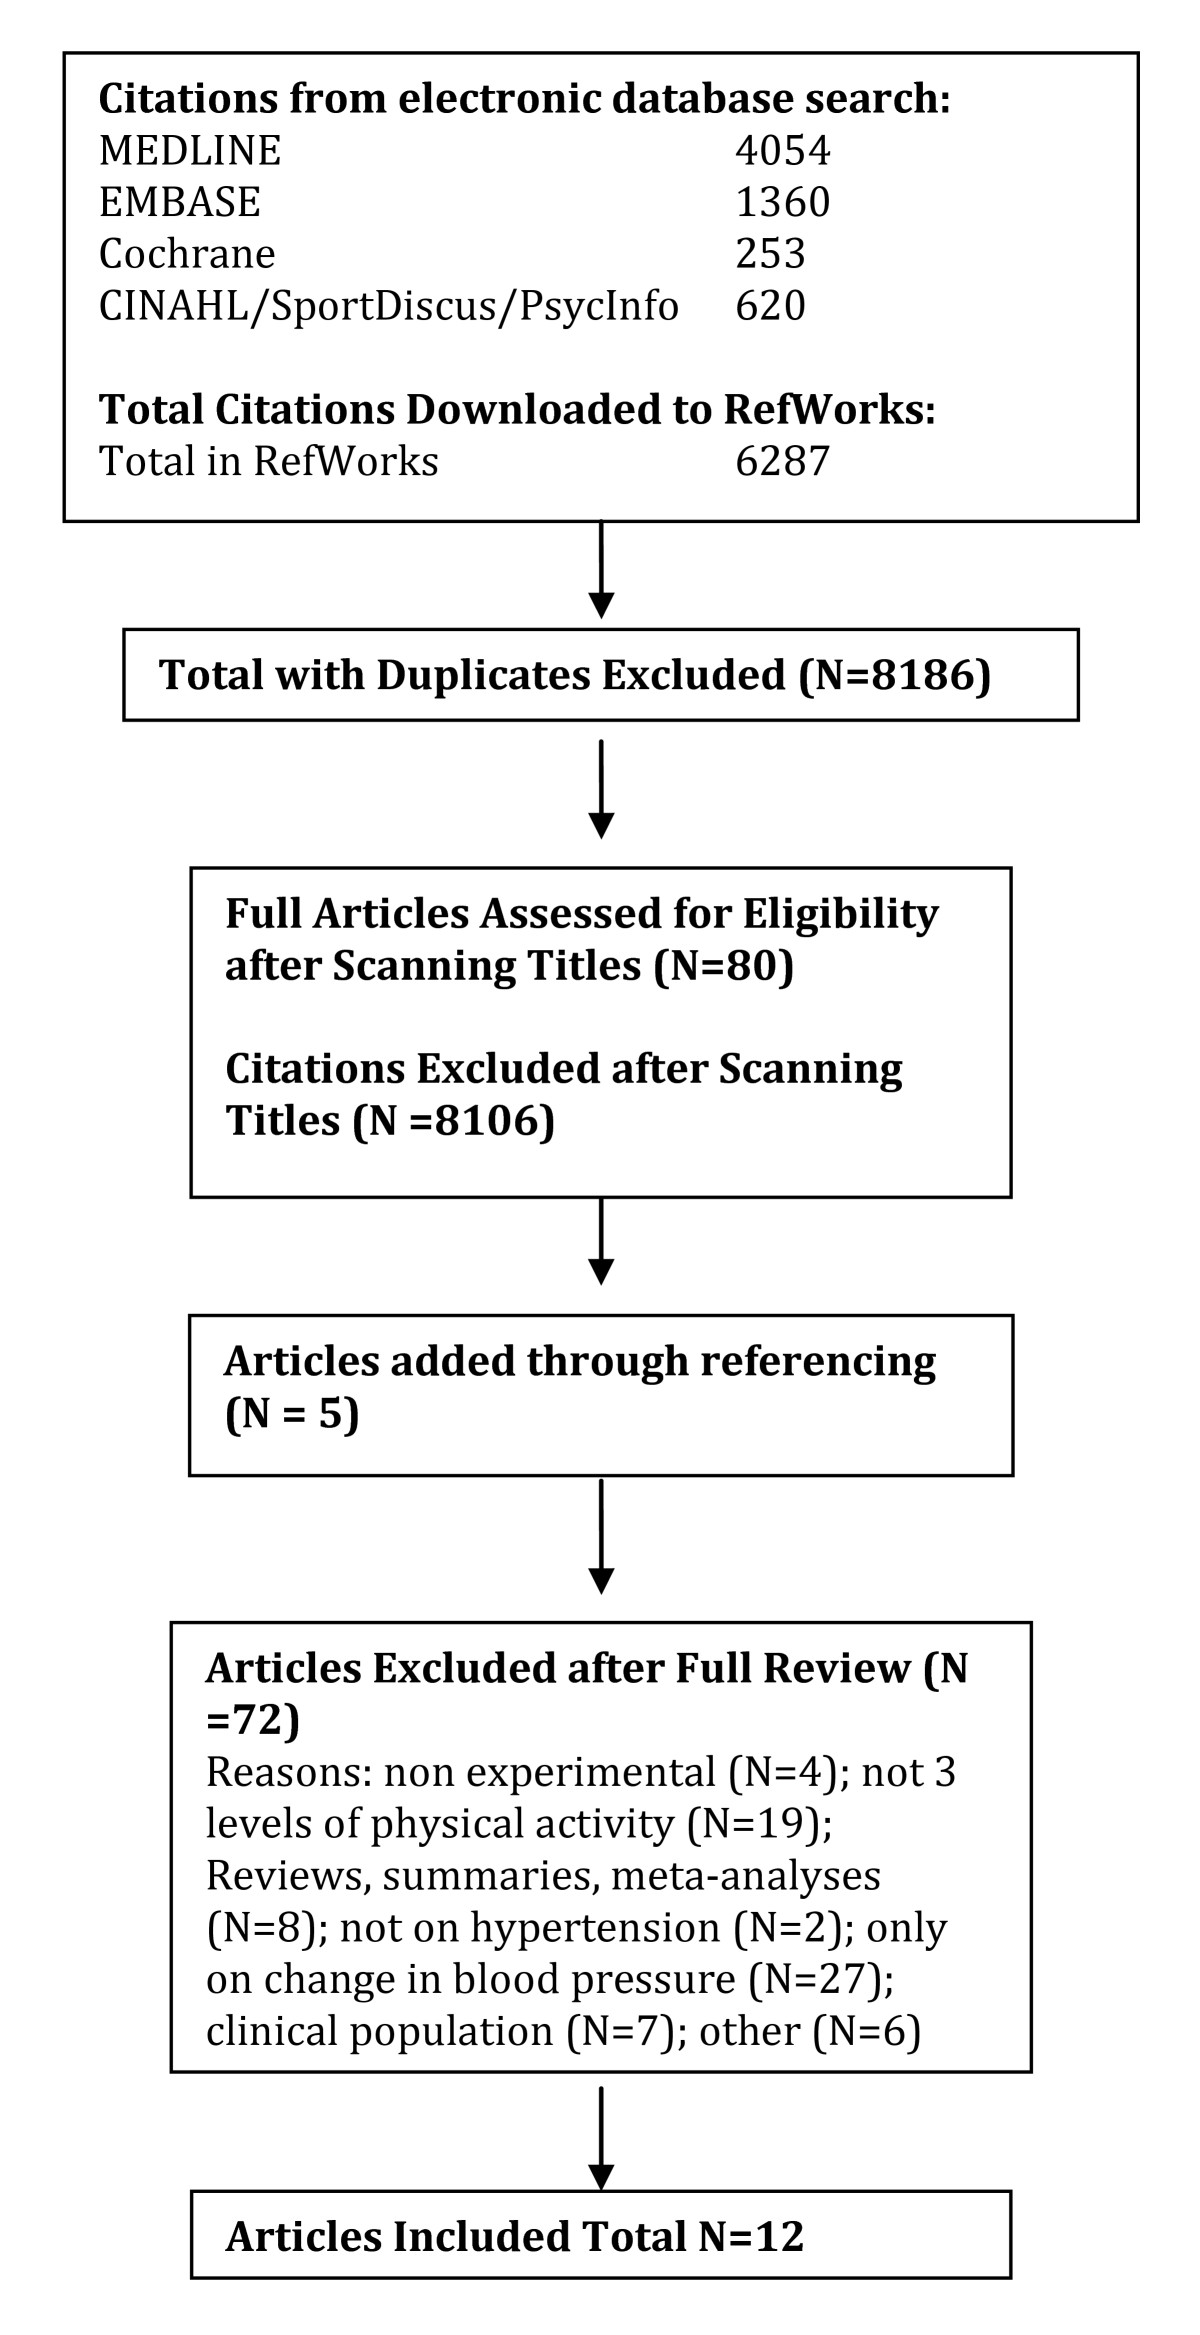 http://static-content.springer.com/image/art%3A10.1186%2F1479-5868-7-39/MediaObjects/12966_2009_Article_345_Fig6_HTML.jpg